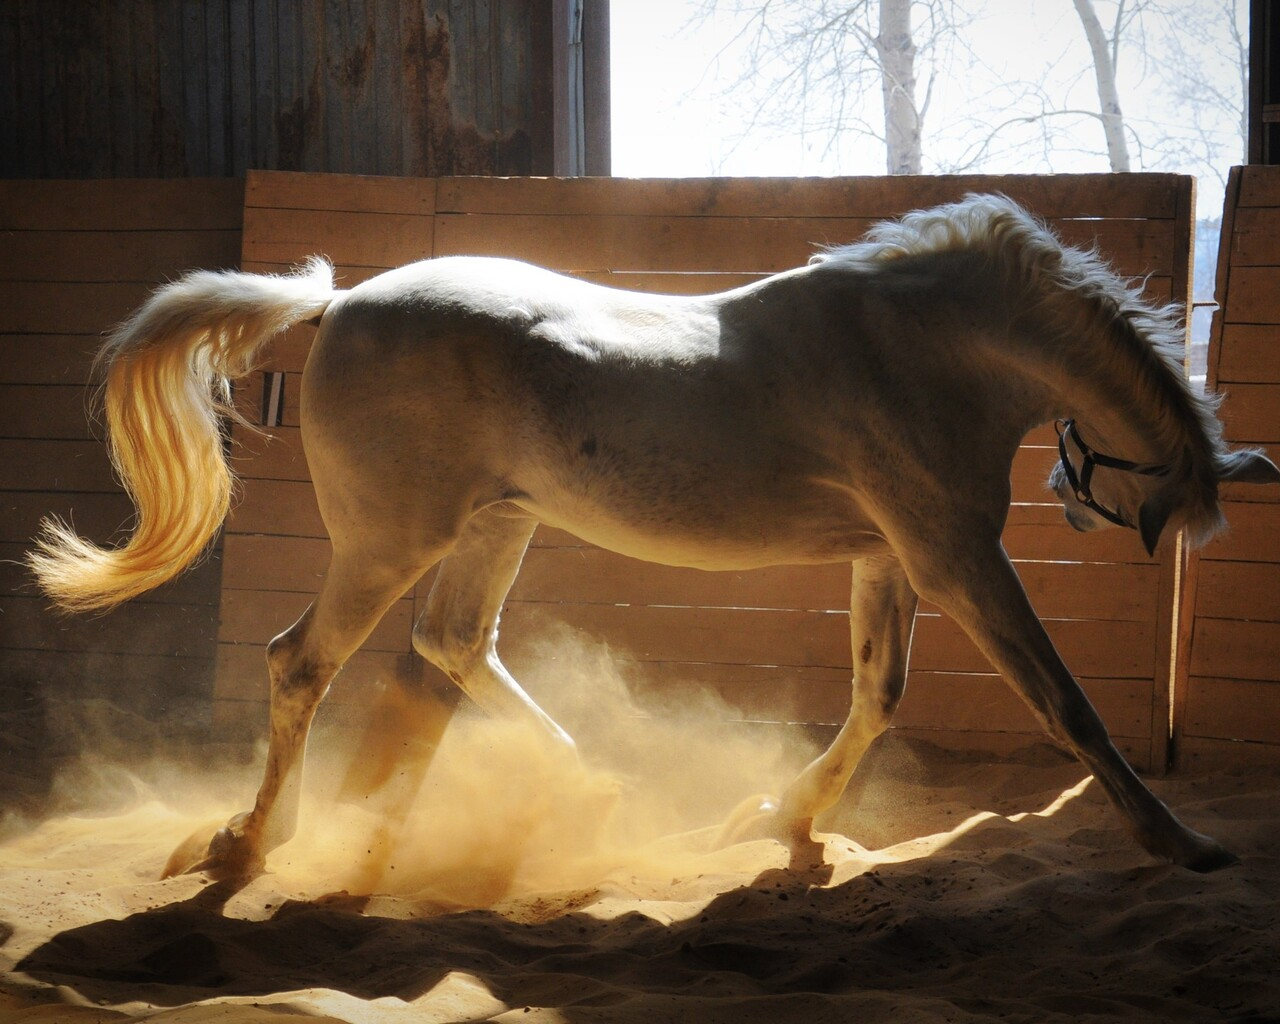 1280x1024 Adorable White Horse 1280x1024 Resolution Hd 4k Wallpapers Images Backgrounds Photos And Pictures